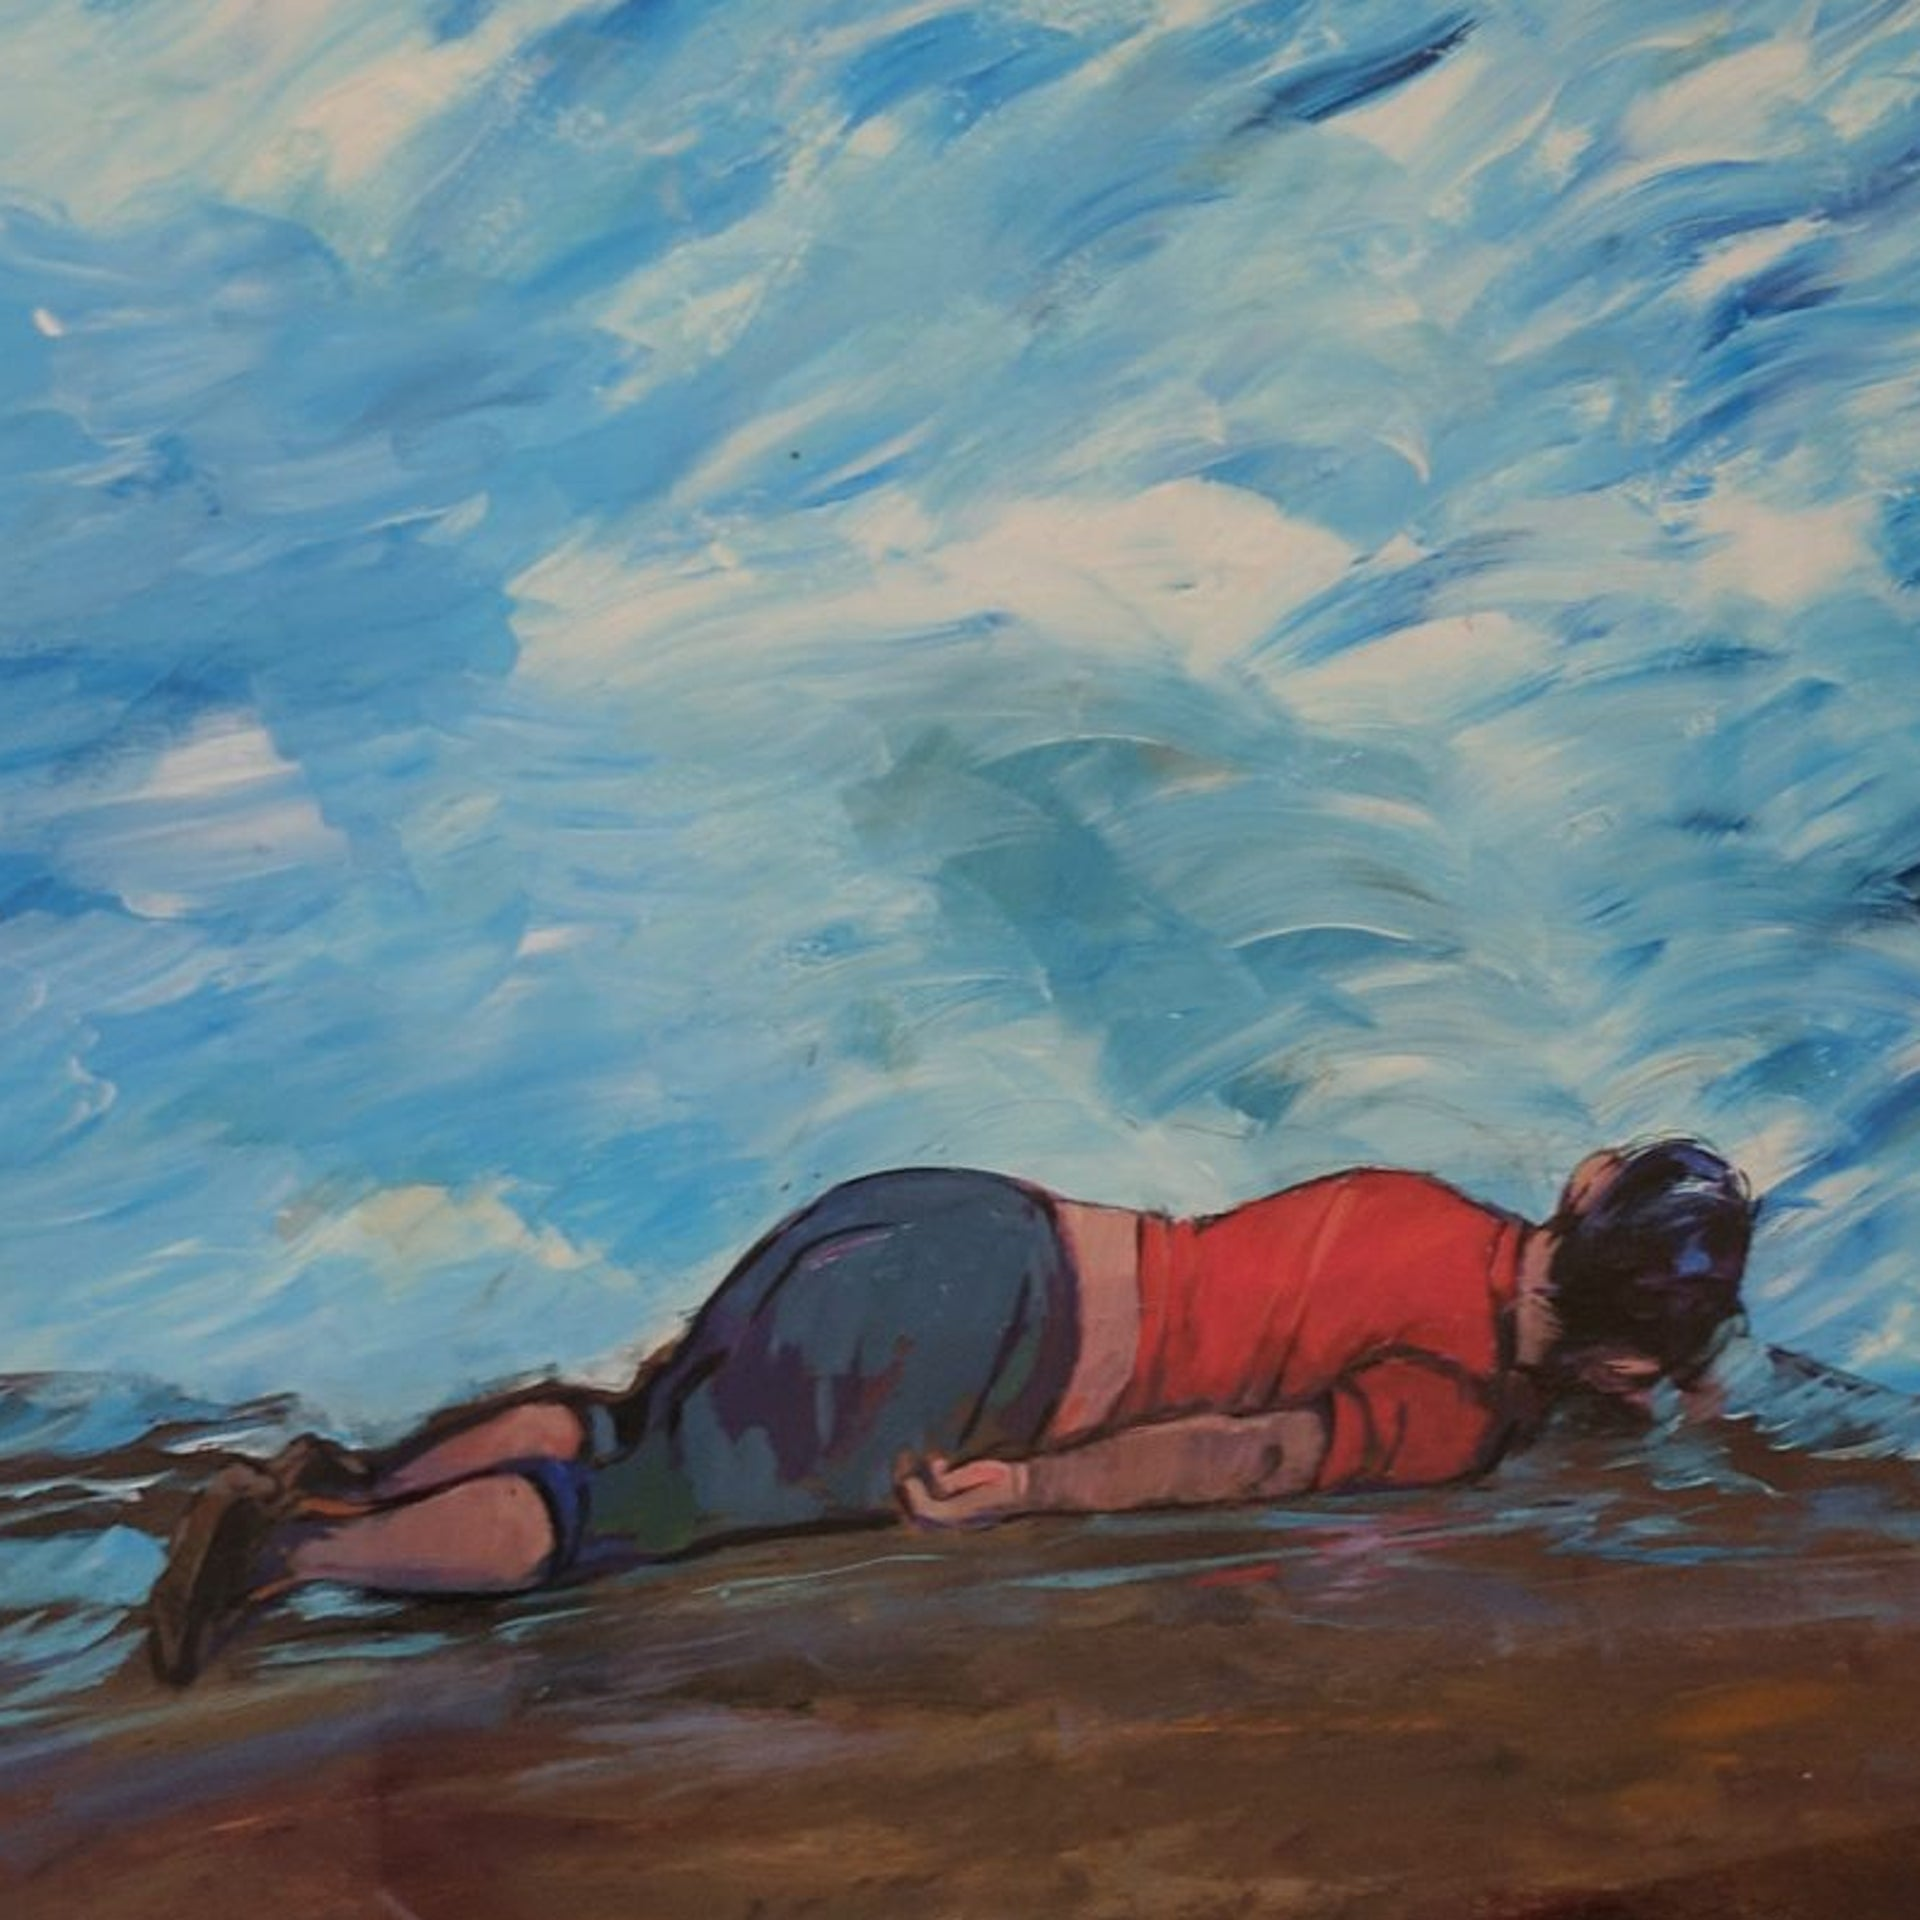 A painting shown as part of the 'Ode to the Sea: Art from Guantánamo Bay' exhibition in New York.